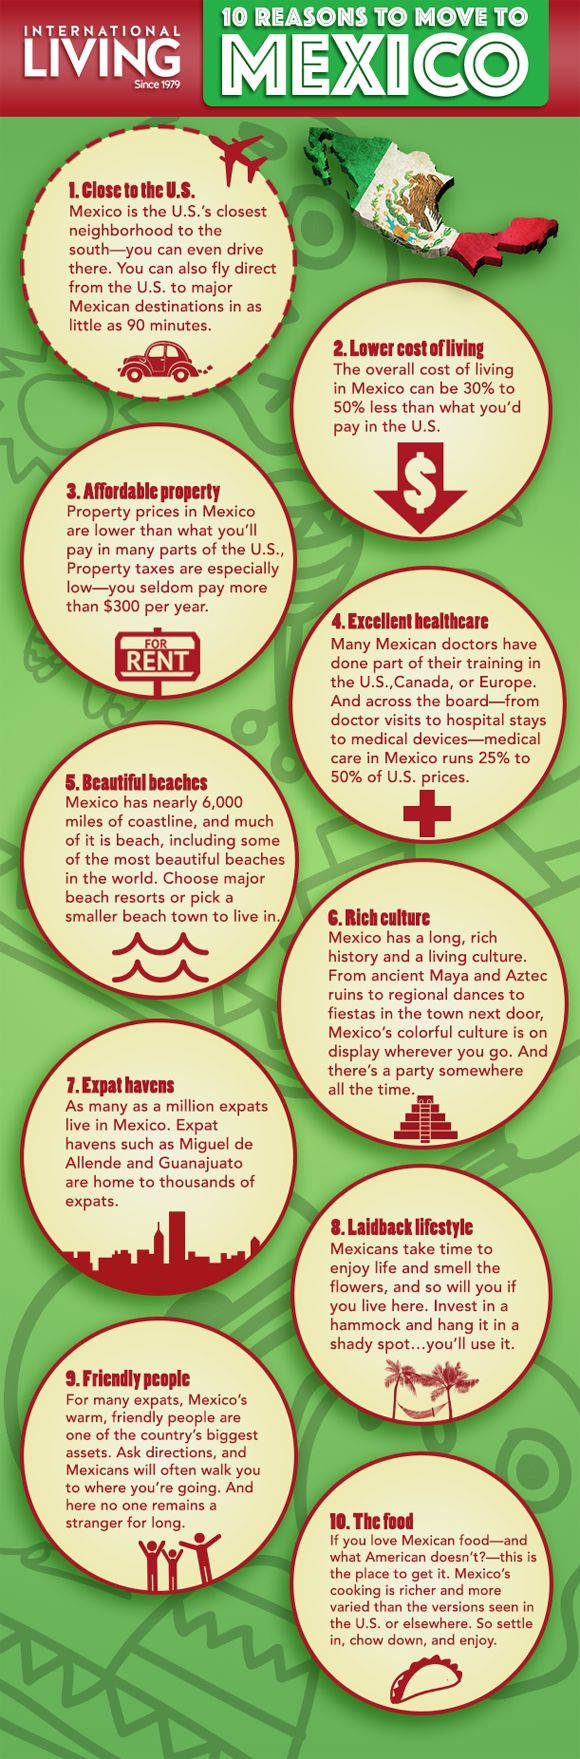 10 Reasons To Move To Mexico